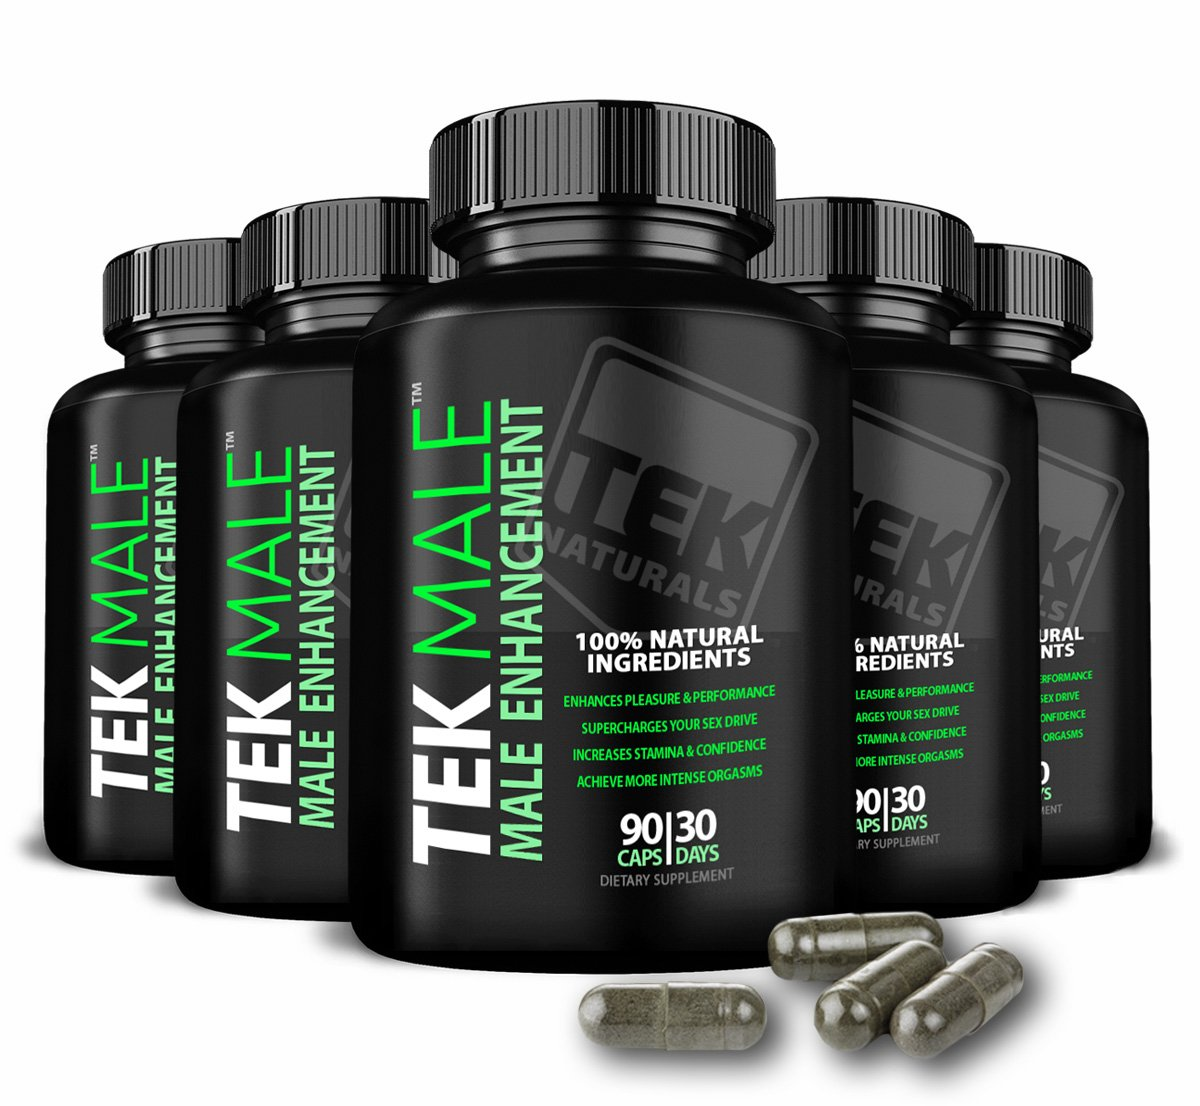 6 Bottles of TEKMale™ All Natural #1 Rated Male Enhancement Growth - 11 Ingredients, 540 Pills, 180 Day Supply - Horny Goat Weed - Strength, Energy, Erections, Stamina and More (6)